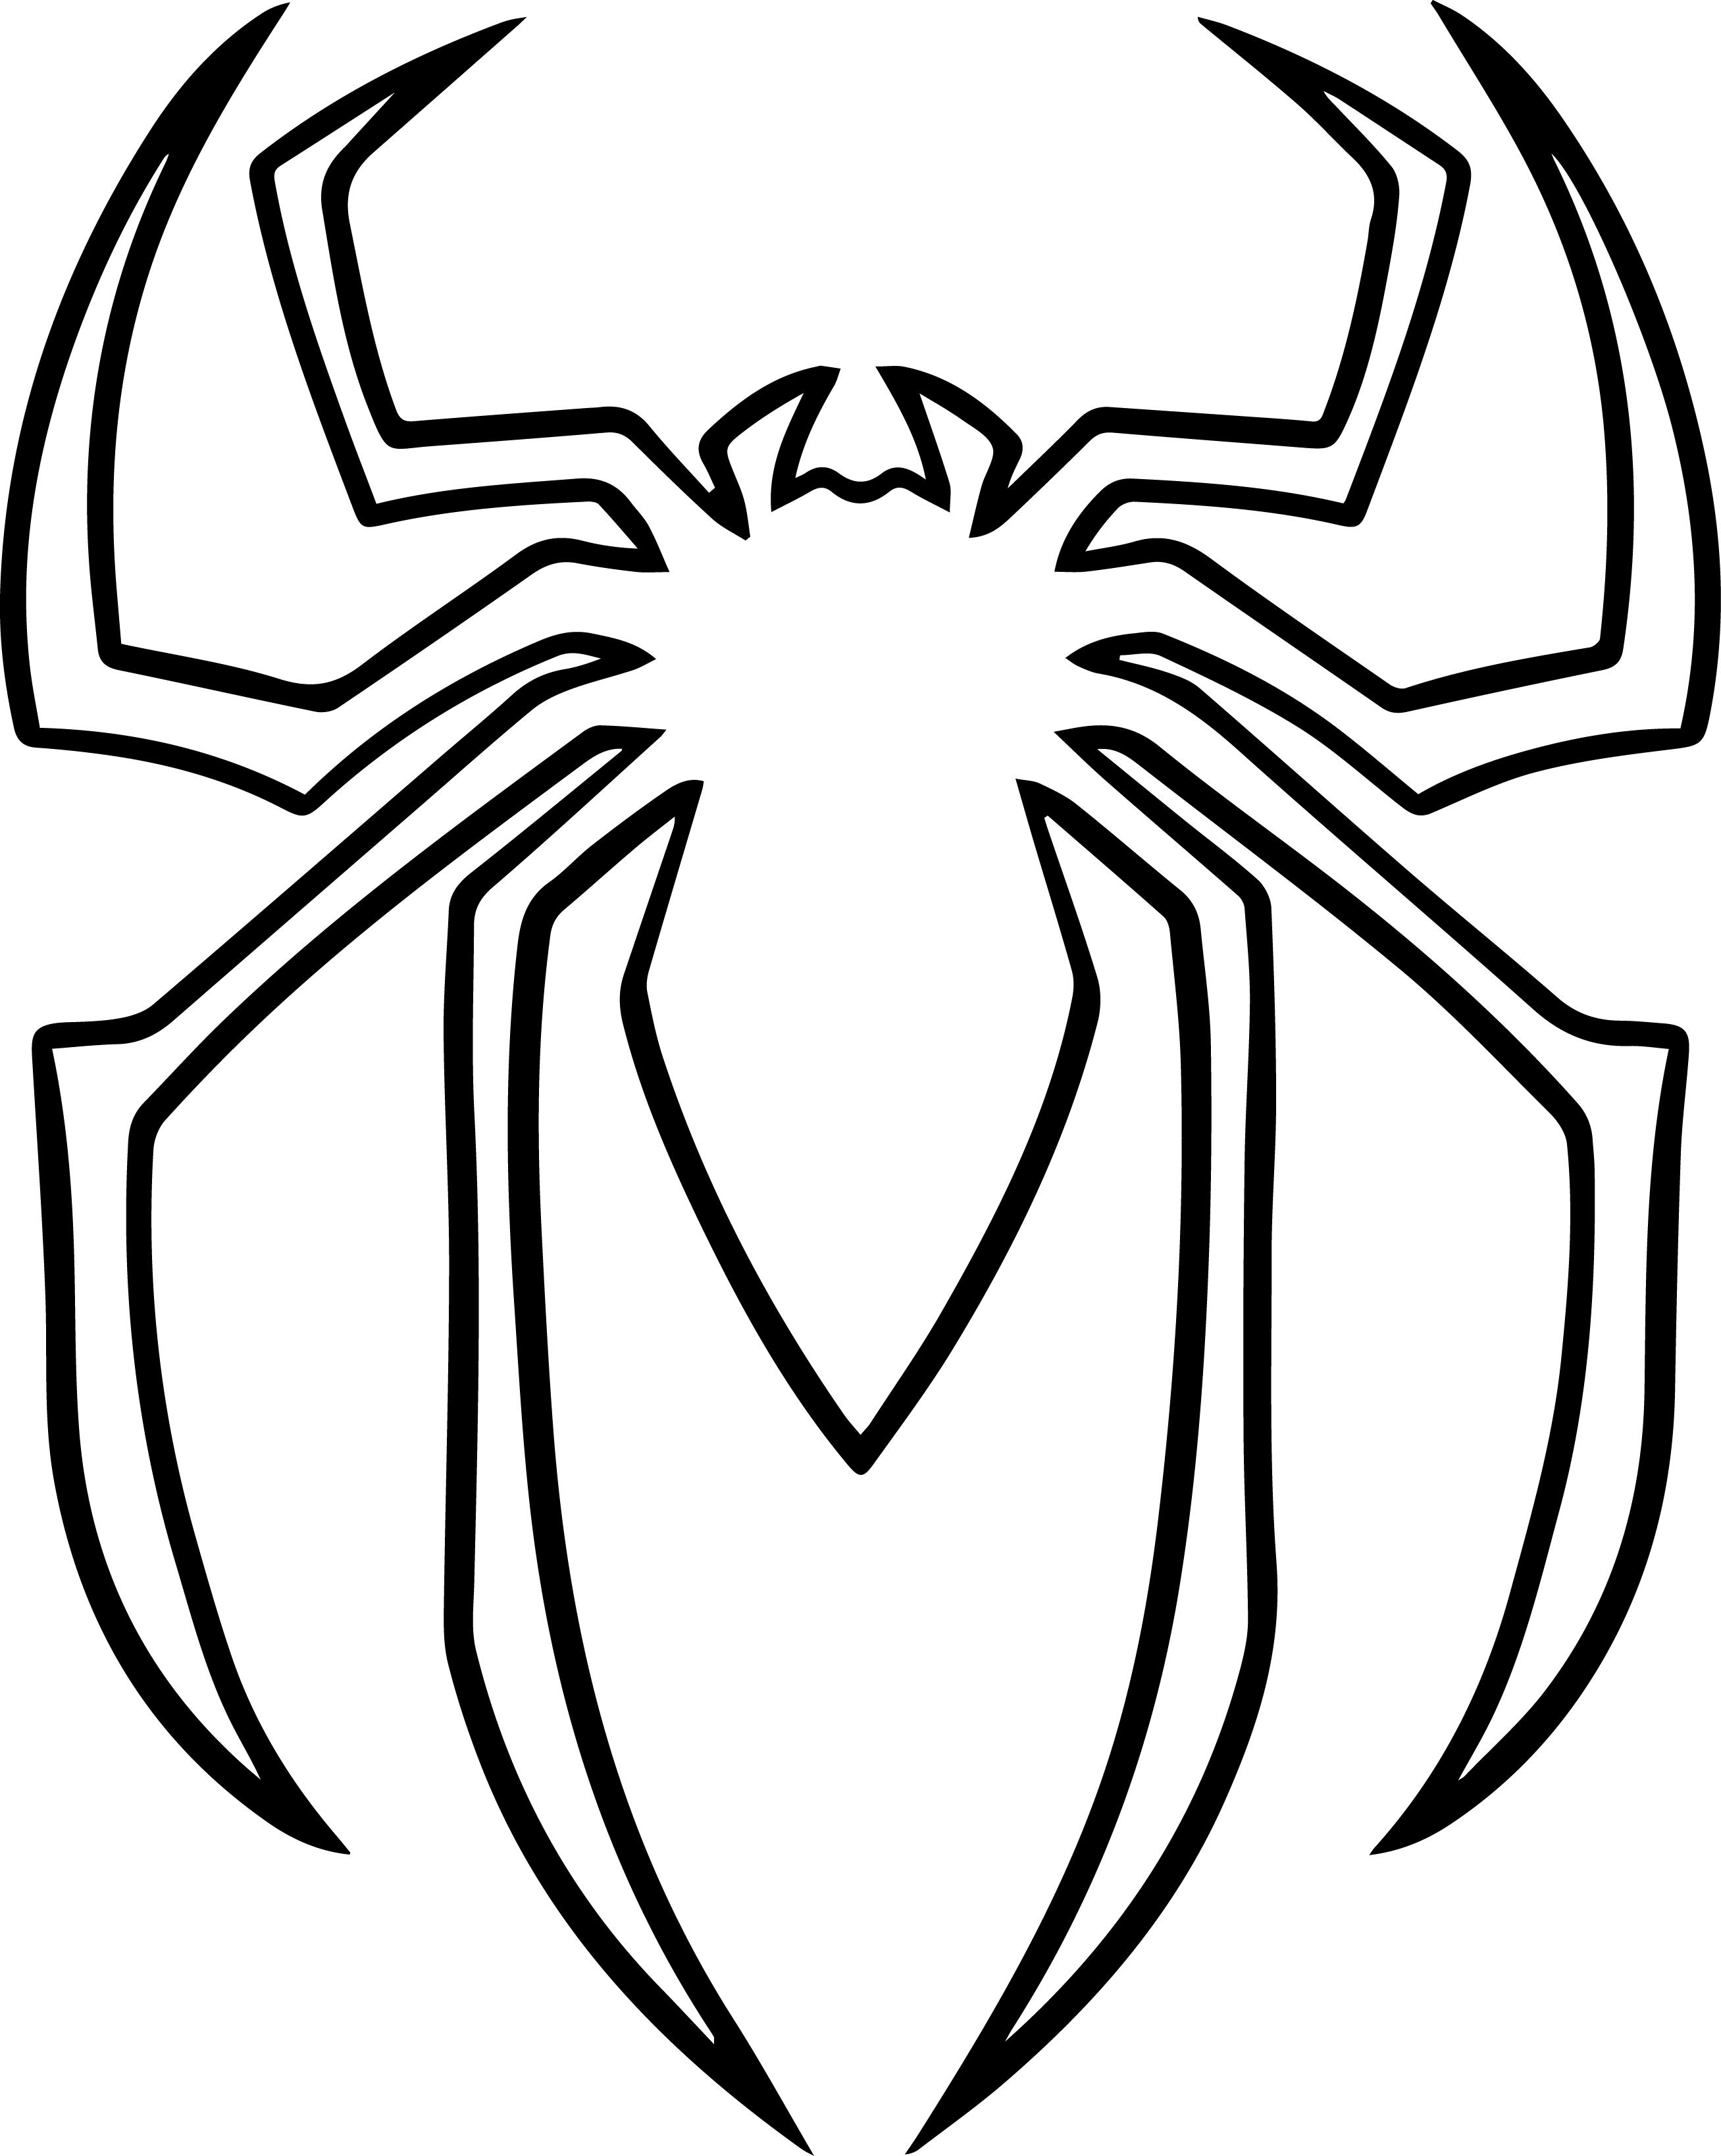 2615x3276 Spiderman Clipart Colouring Page Spiderman Pumpkin Spiderman Pumpkin Stencil Spiderman Coloring